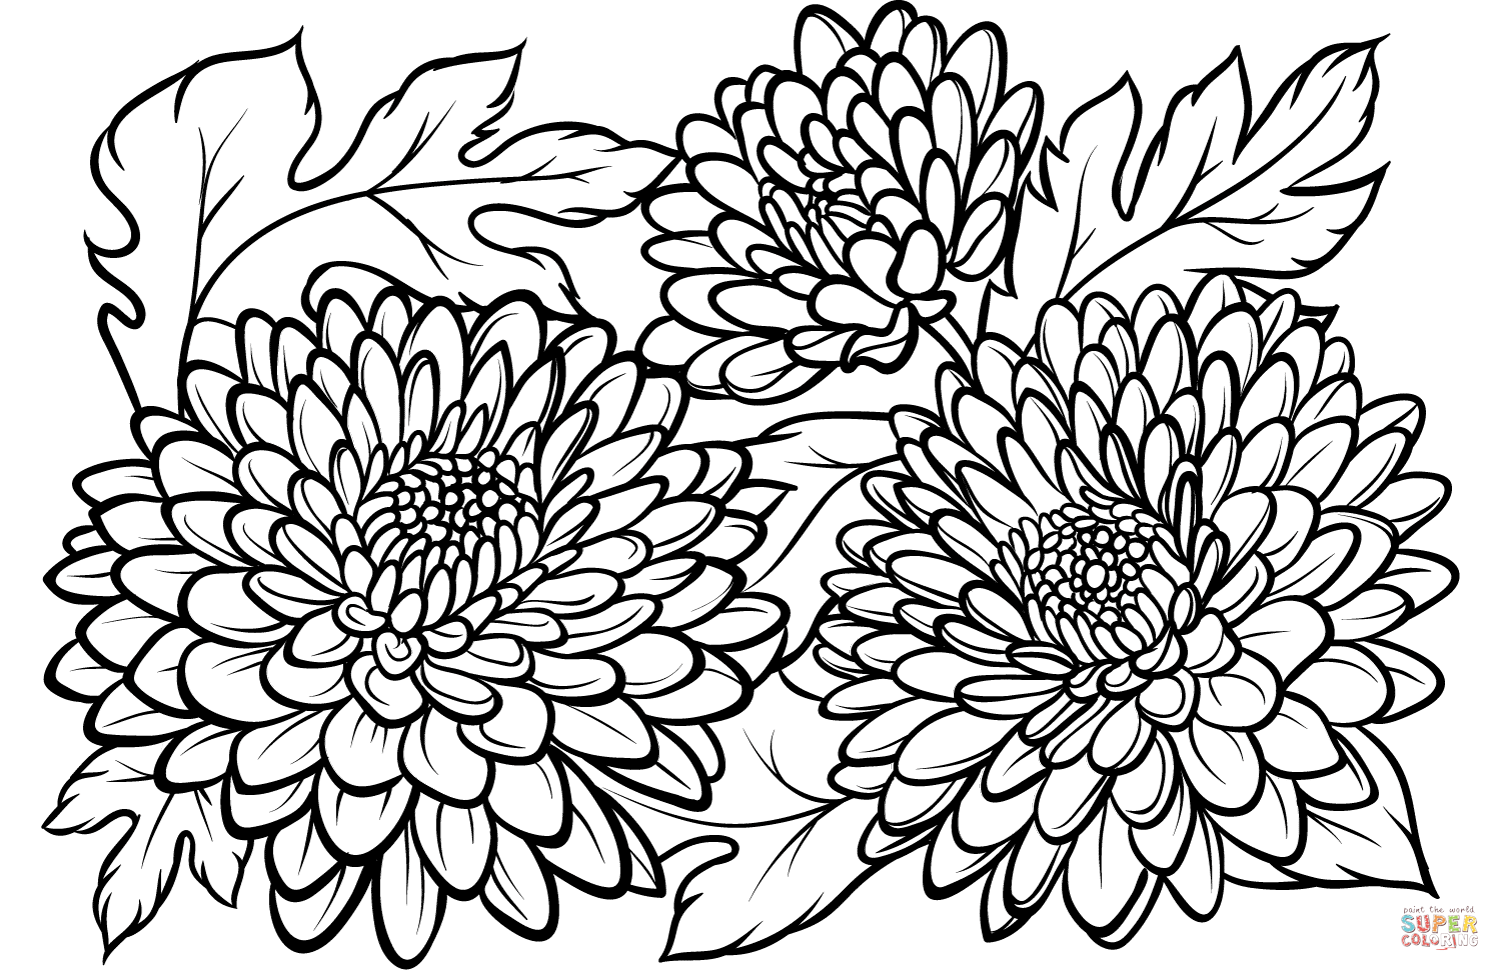 chrysanthemum coloring pages free kevin henkes coloring pages coloring home chrysanthemum coloring pages